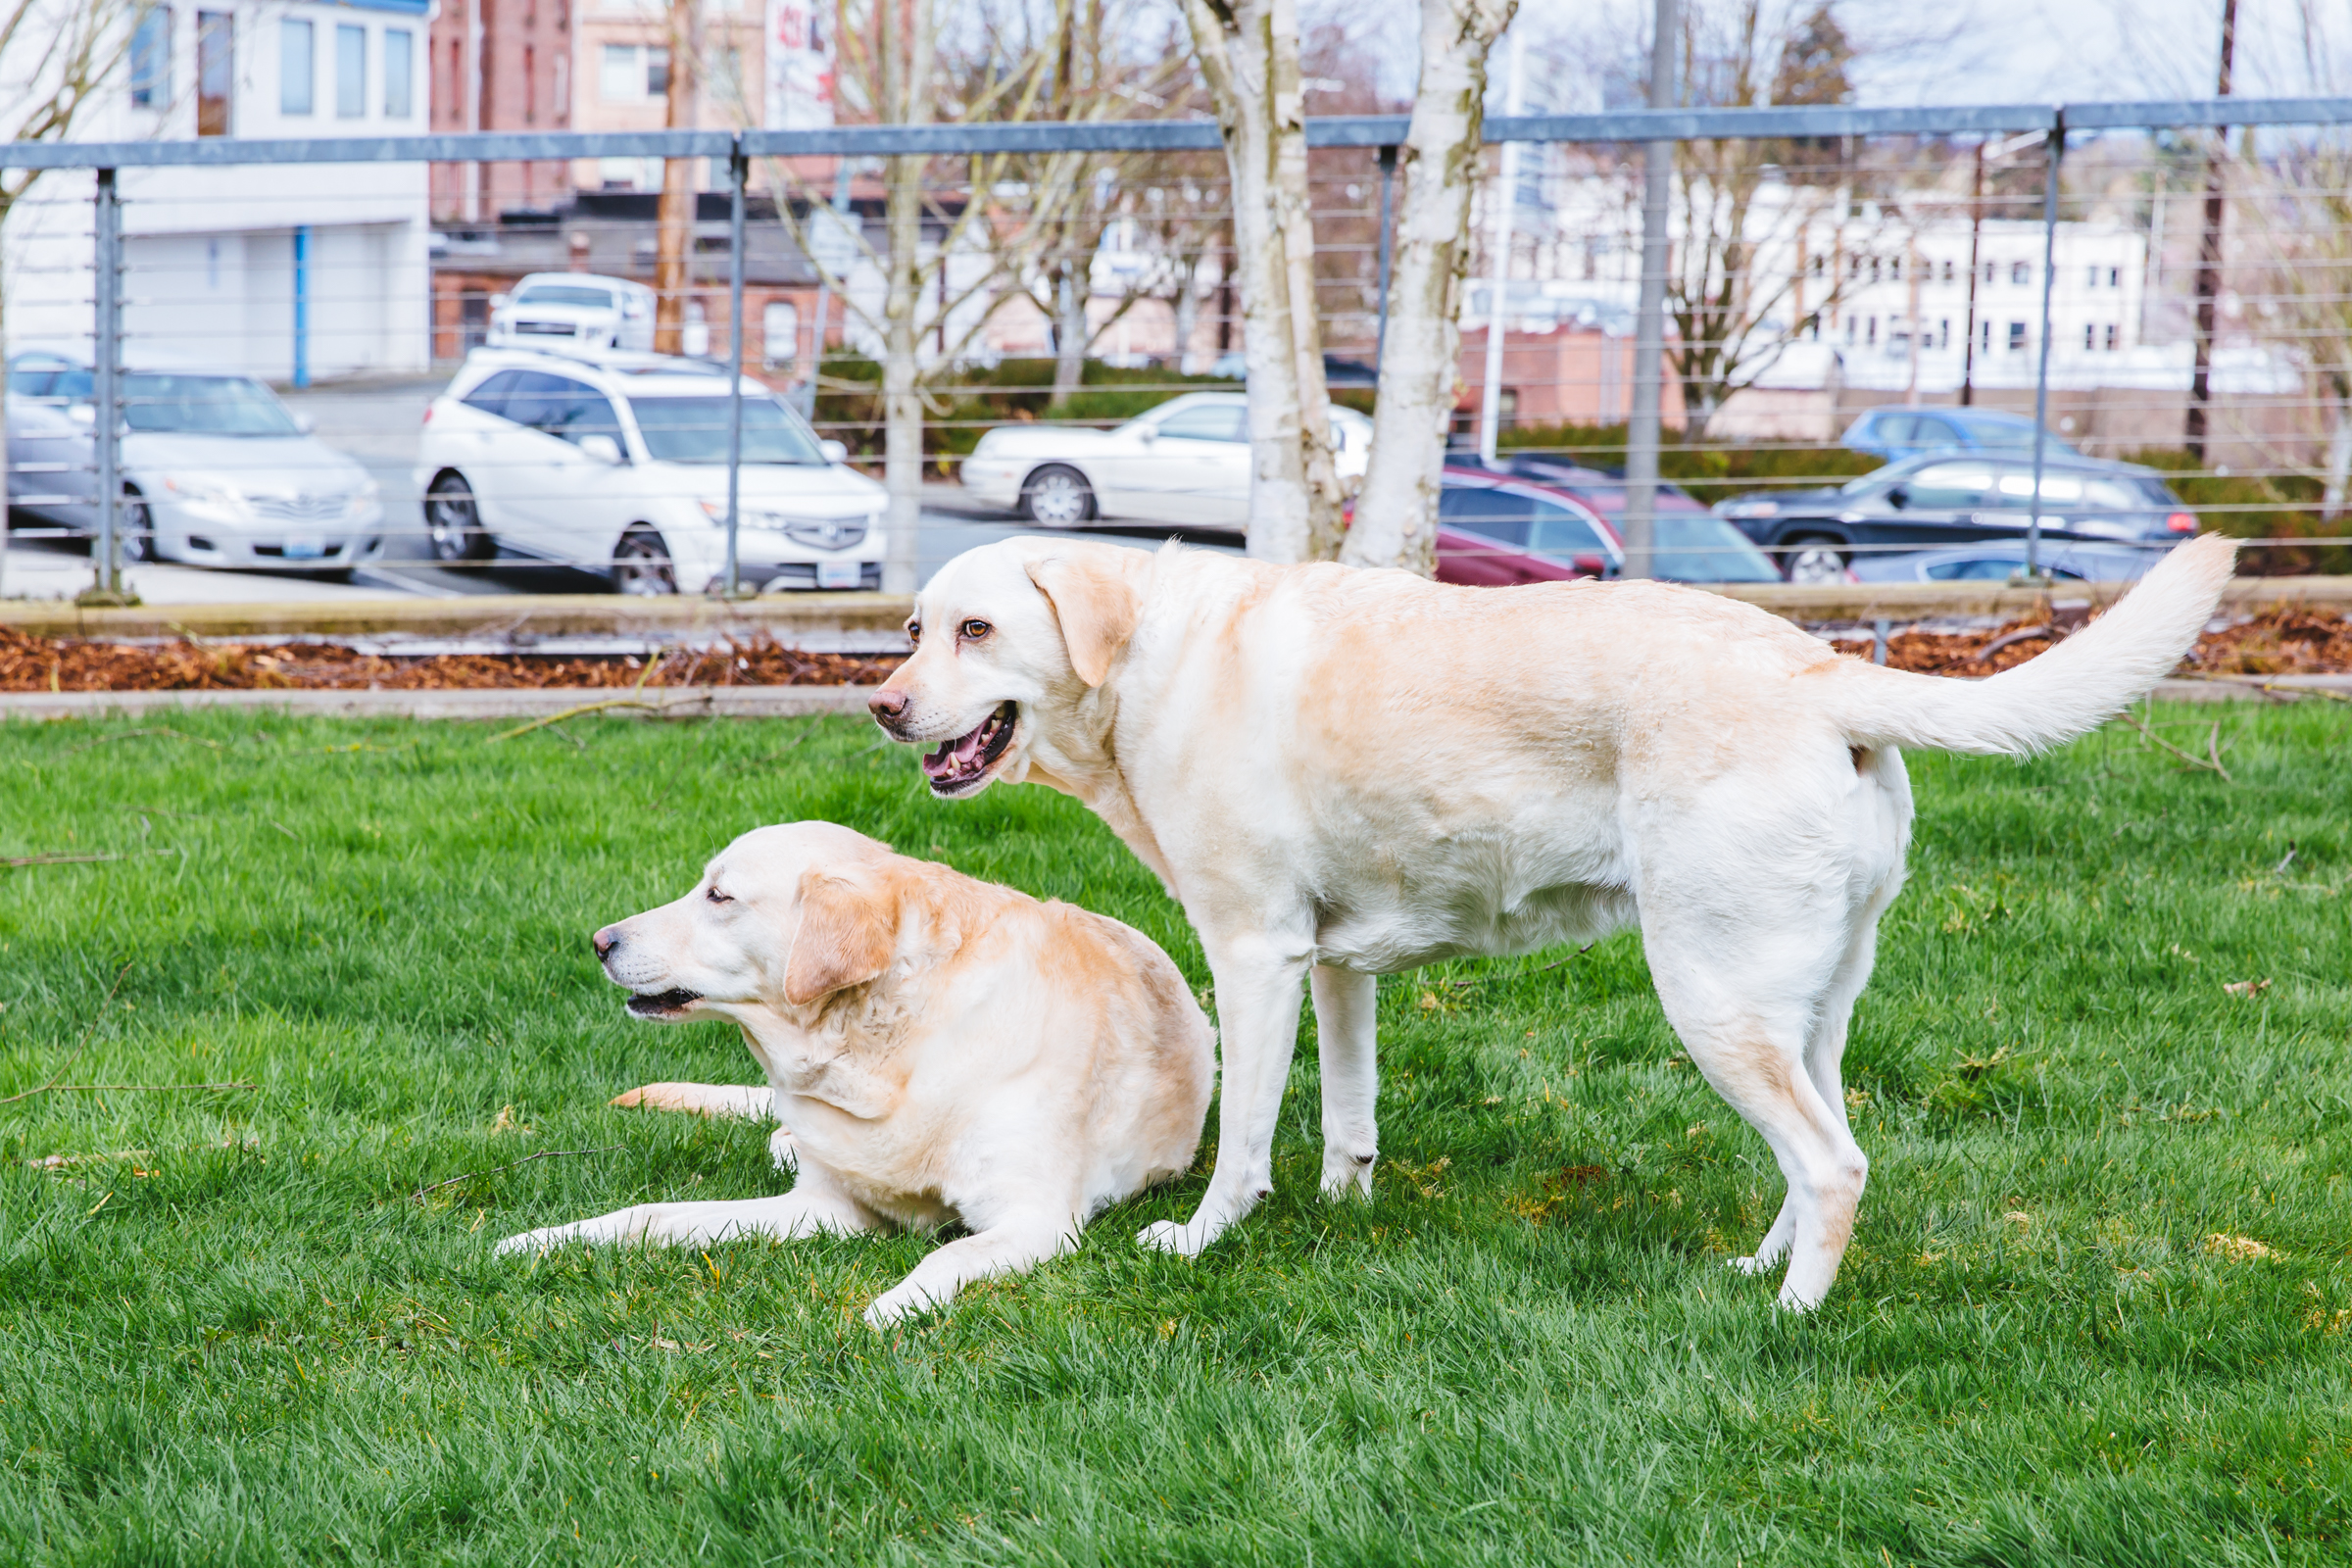 This week, RUFFined is spotlighting two service dogs, Harper Lea & Lucy Lu who serve at the Everett Courthouse, and were trained with Canine Companionship for Independence. Harper Lea is a 6 year old Lab who sits with children who were involved in stressful situations at the courthouse. Harper Lea loves to play with other dogs and children, cuddling, coming to work, apples, and carrots. Although she likes walking, Harper dislikes running, having her nails done and baths. Harper's pal, Lucy Lu is a 5 year old retriever-lab mix. Lucy loves bacon, laying in the sun, long baths, and hide and seek. Lucy also dislikes having her nails done. Lucy provides companionship and comfort to victims and witnesses through their entire judicial journey! The Seattle RUFFined Spotlight is a weekly profile of local pets living and loving life in the PNW. If you or someone you know has a pet you'd like featured, email us at hello@seattlerefined.com or tag #SeattleRUFFined and your furbaby could be the next spotlighted! (Image: Sunita Martini / Seattle Refined).